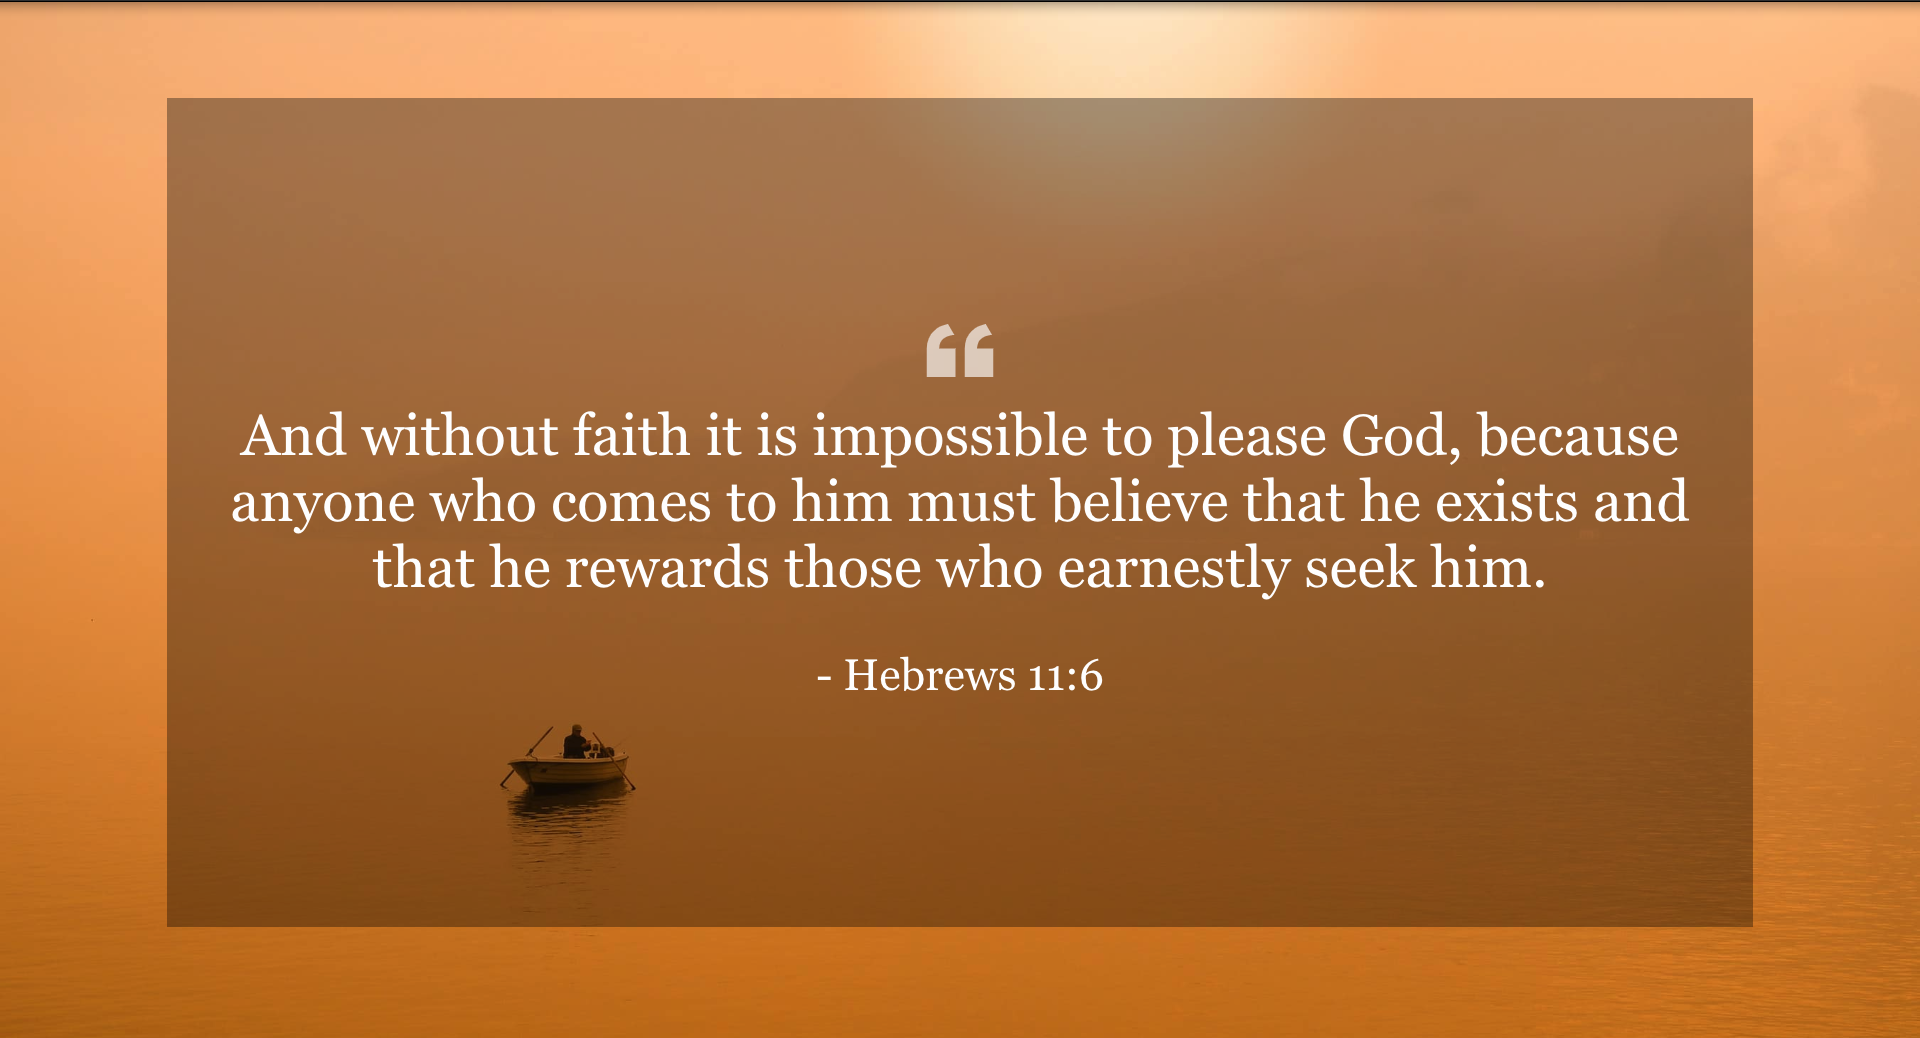 Bible Verse App screenshot 3